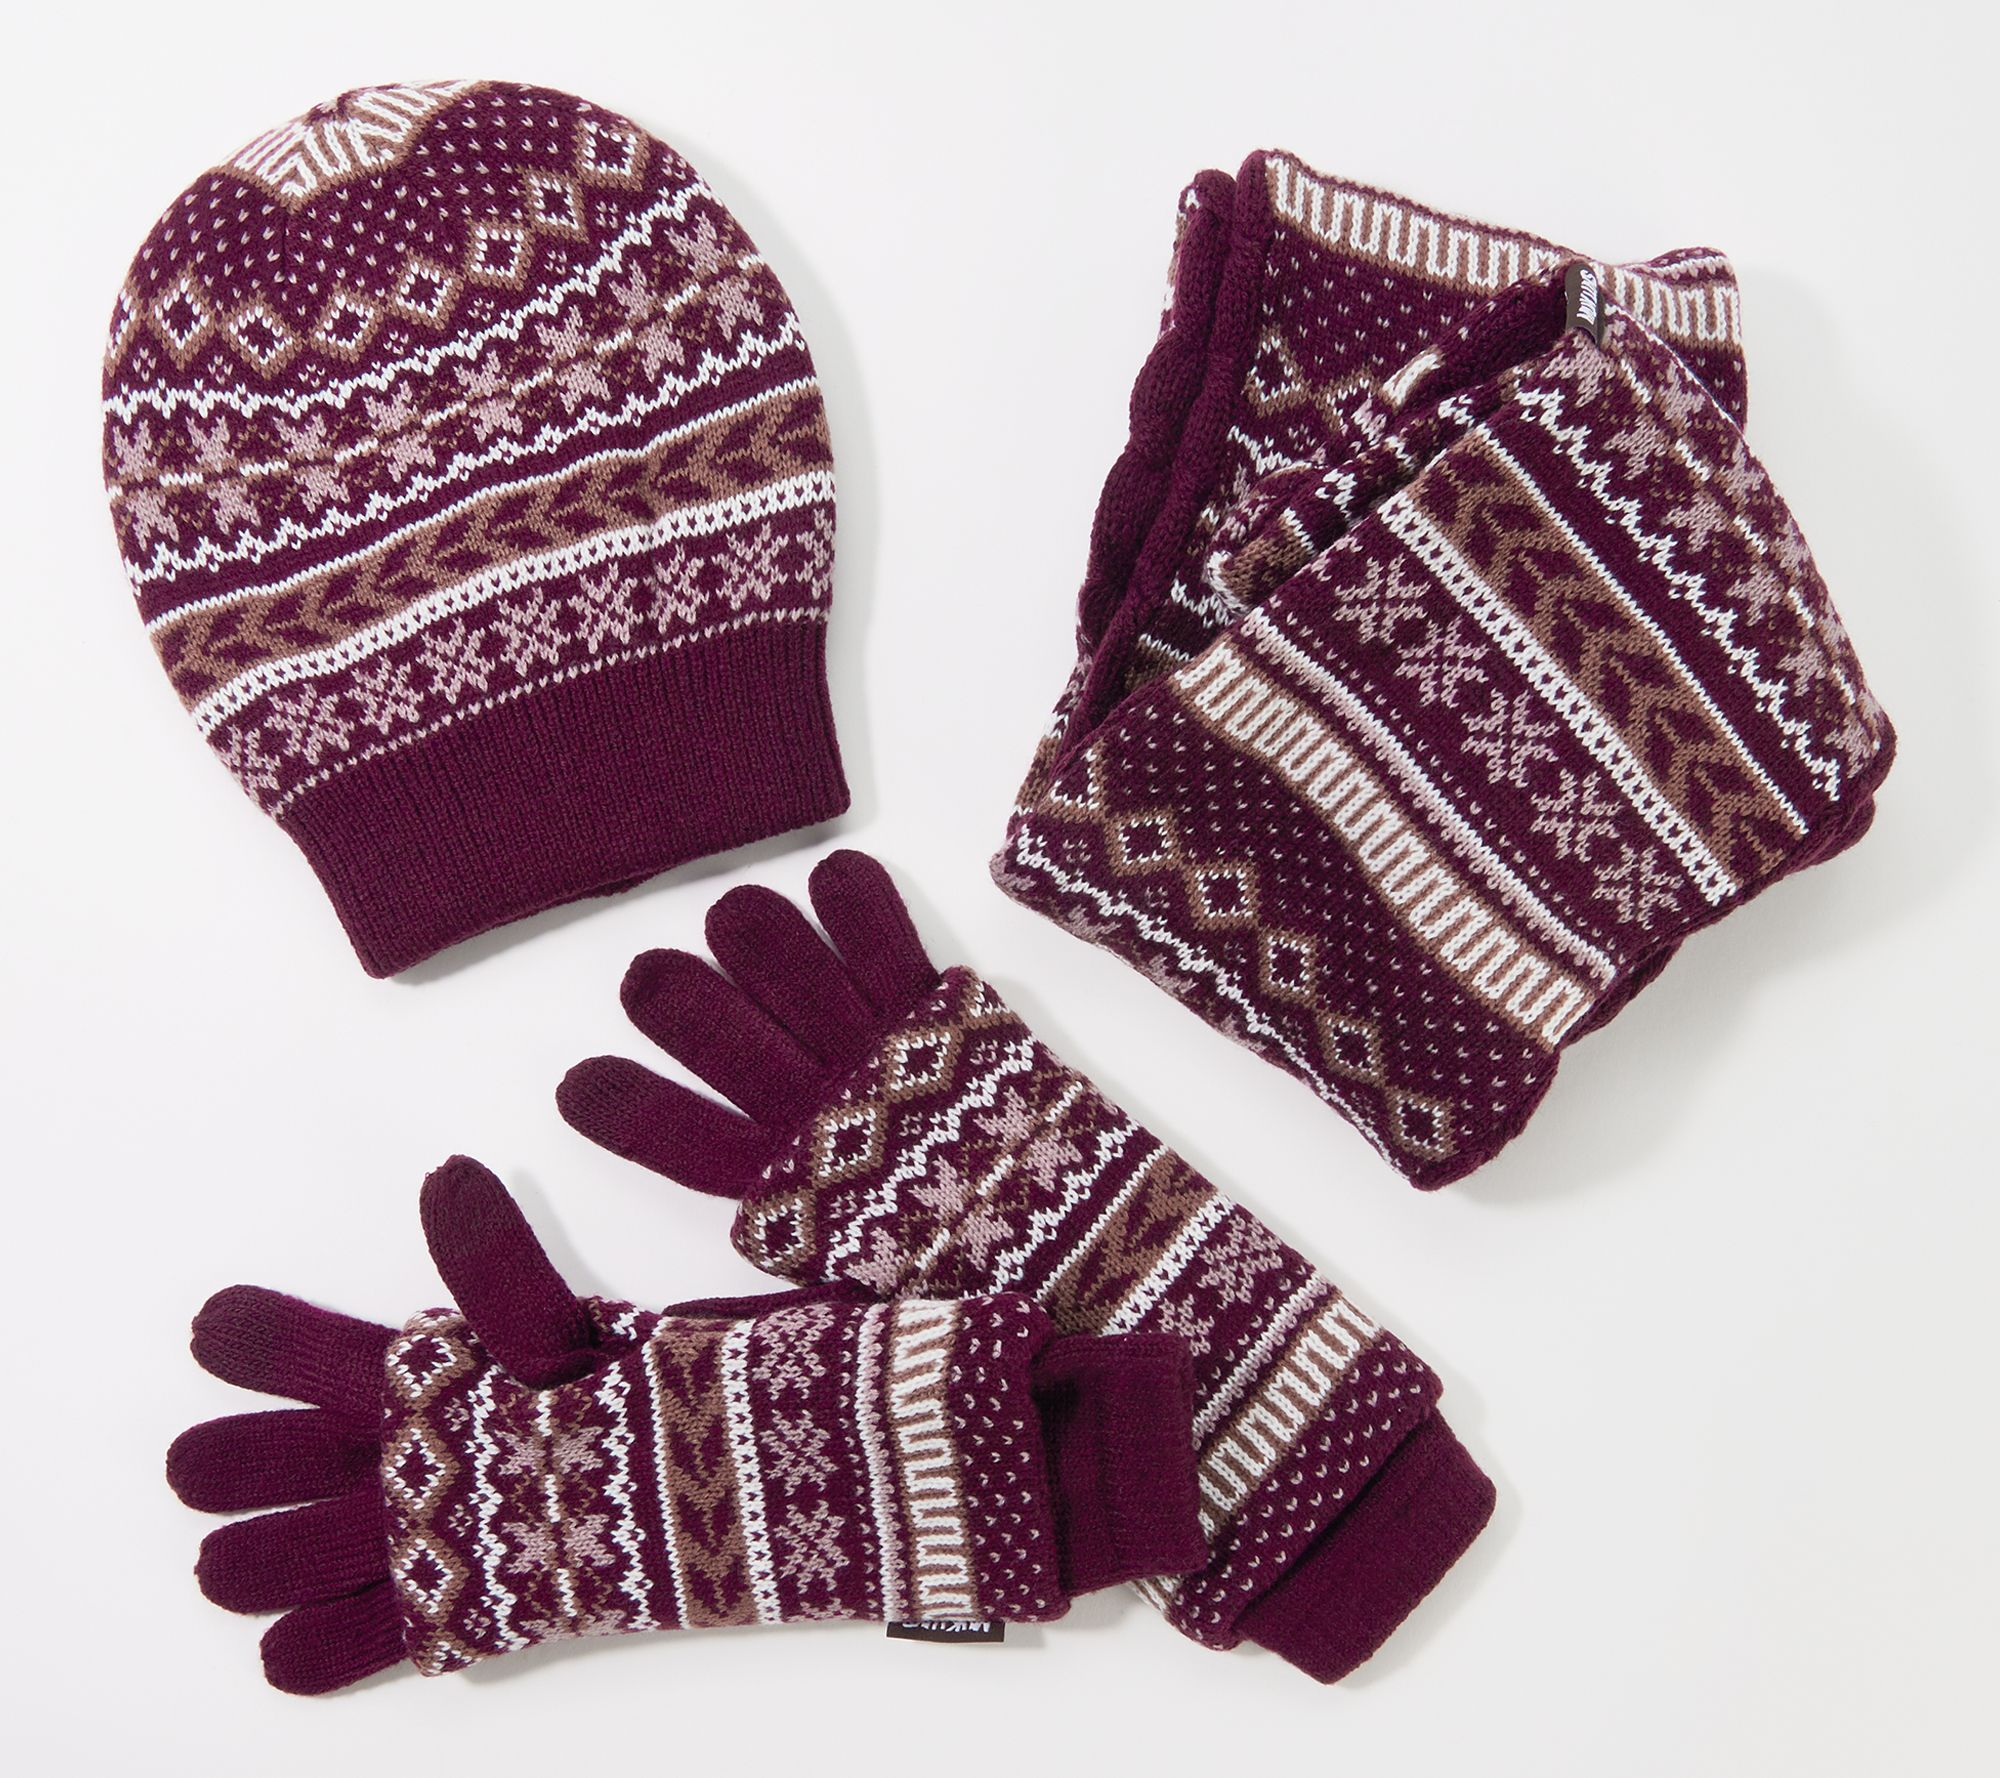 Muk Luks Women S Reversible Hat Scarf And 3 In 1 Glove Set Qvc Com